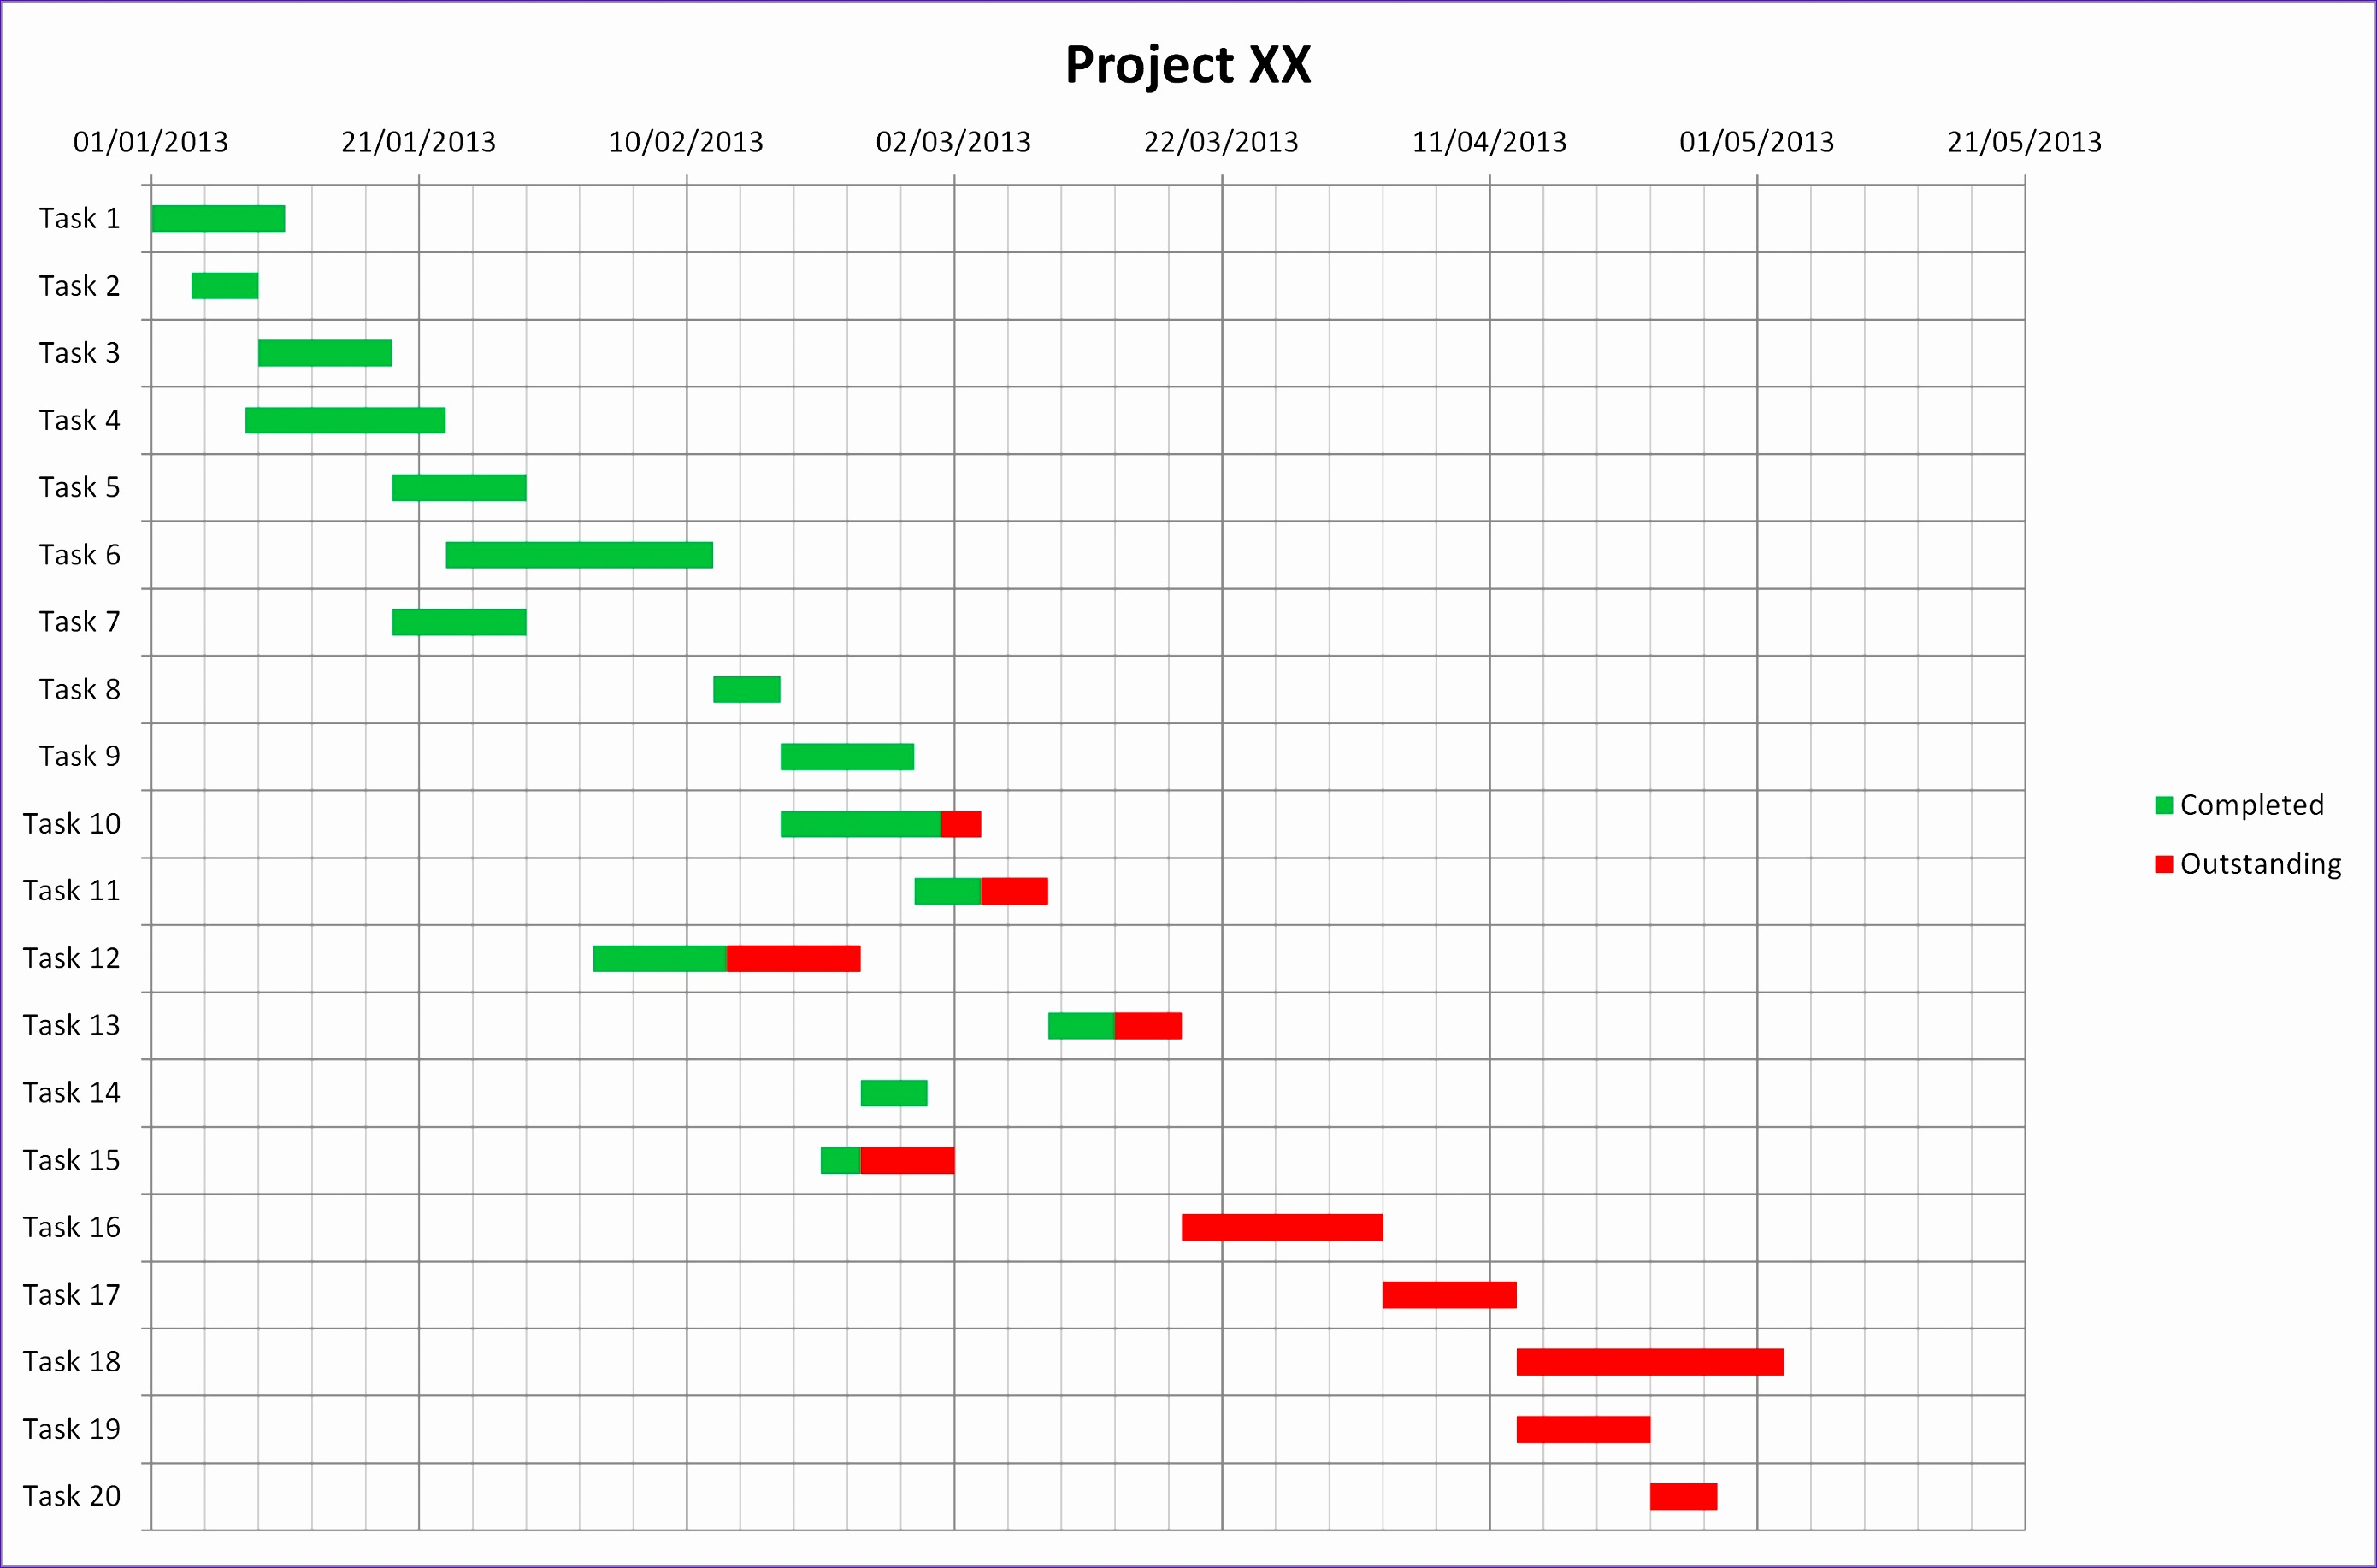 Raci Matrix Template Excel Download Nffcn Lovely Brochure Templates for Google Docs All Templates